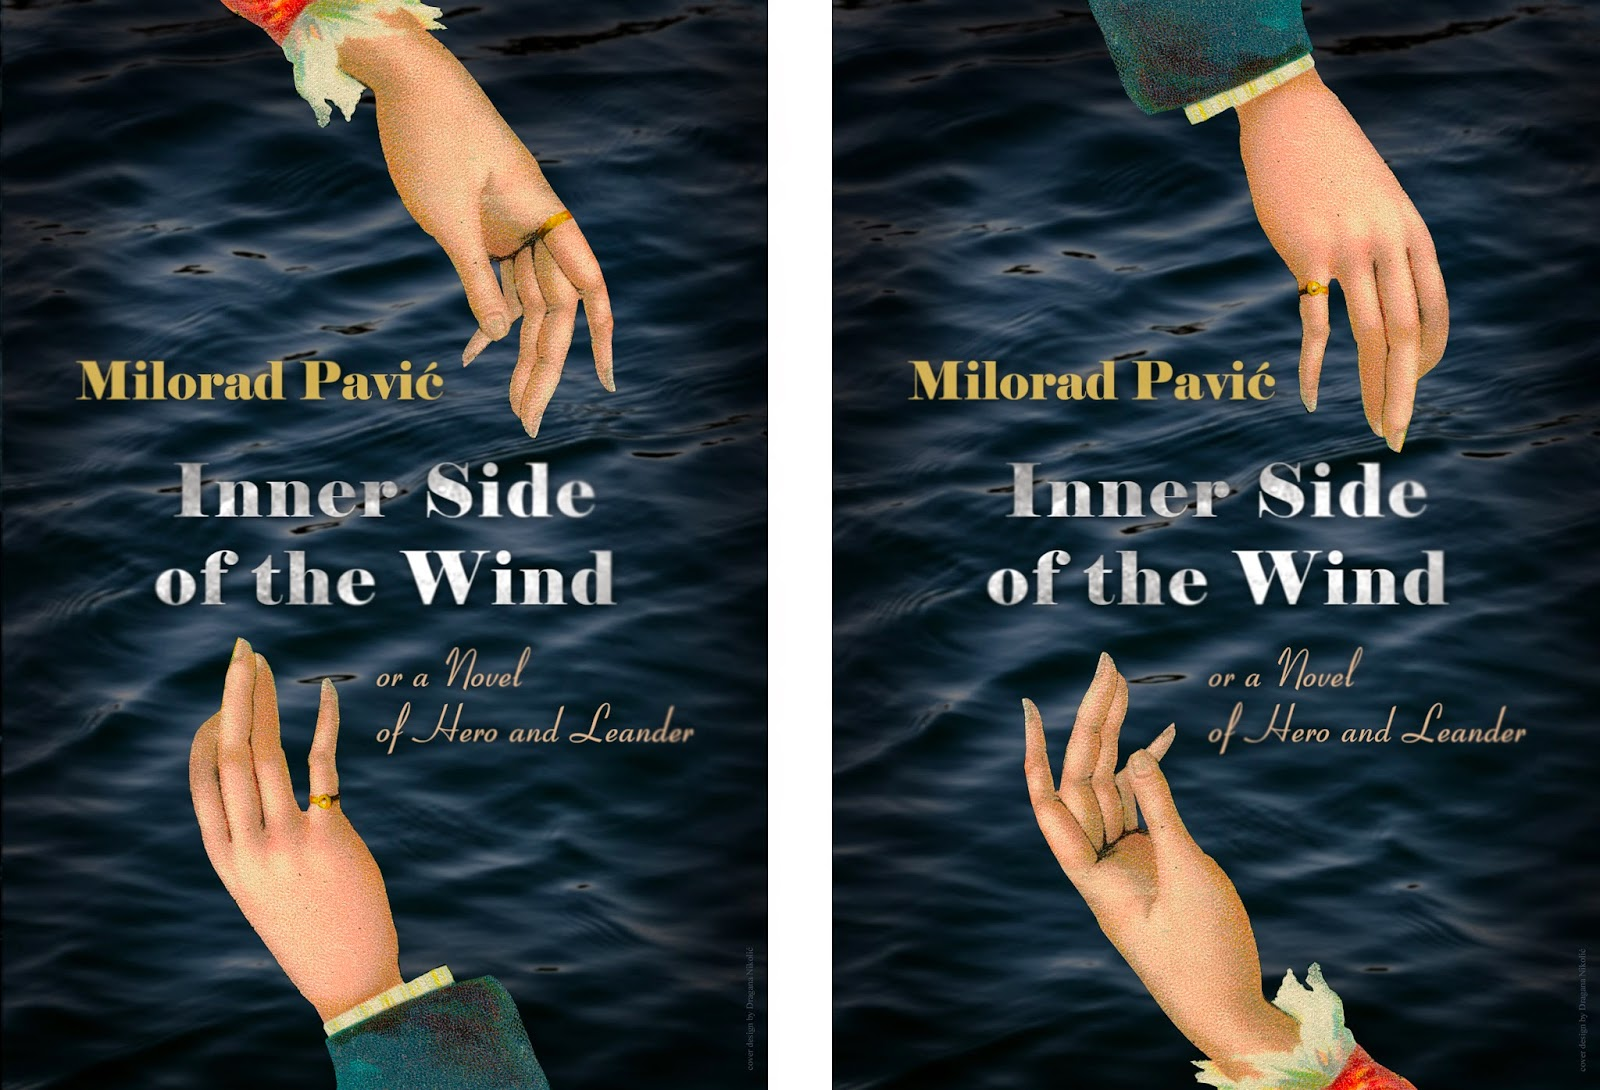 http://www.amazon.com/Inner-Side-Wind-Milorad-Pavic-ebook/dp/B007R0HHBQ/ref=sr_1_3?s=digital-text&ie=UTF8&qid=1395066777&sr=1-3